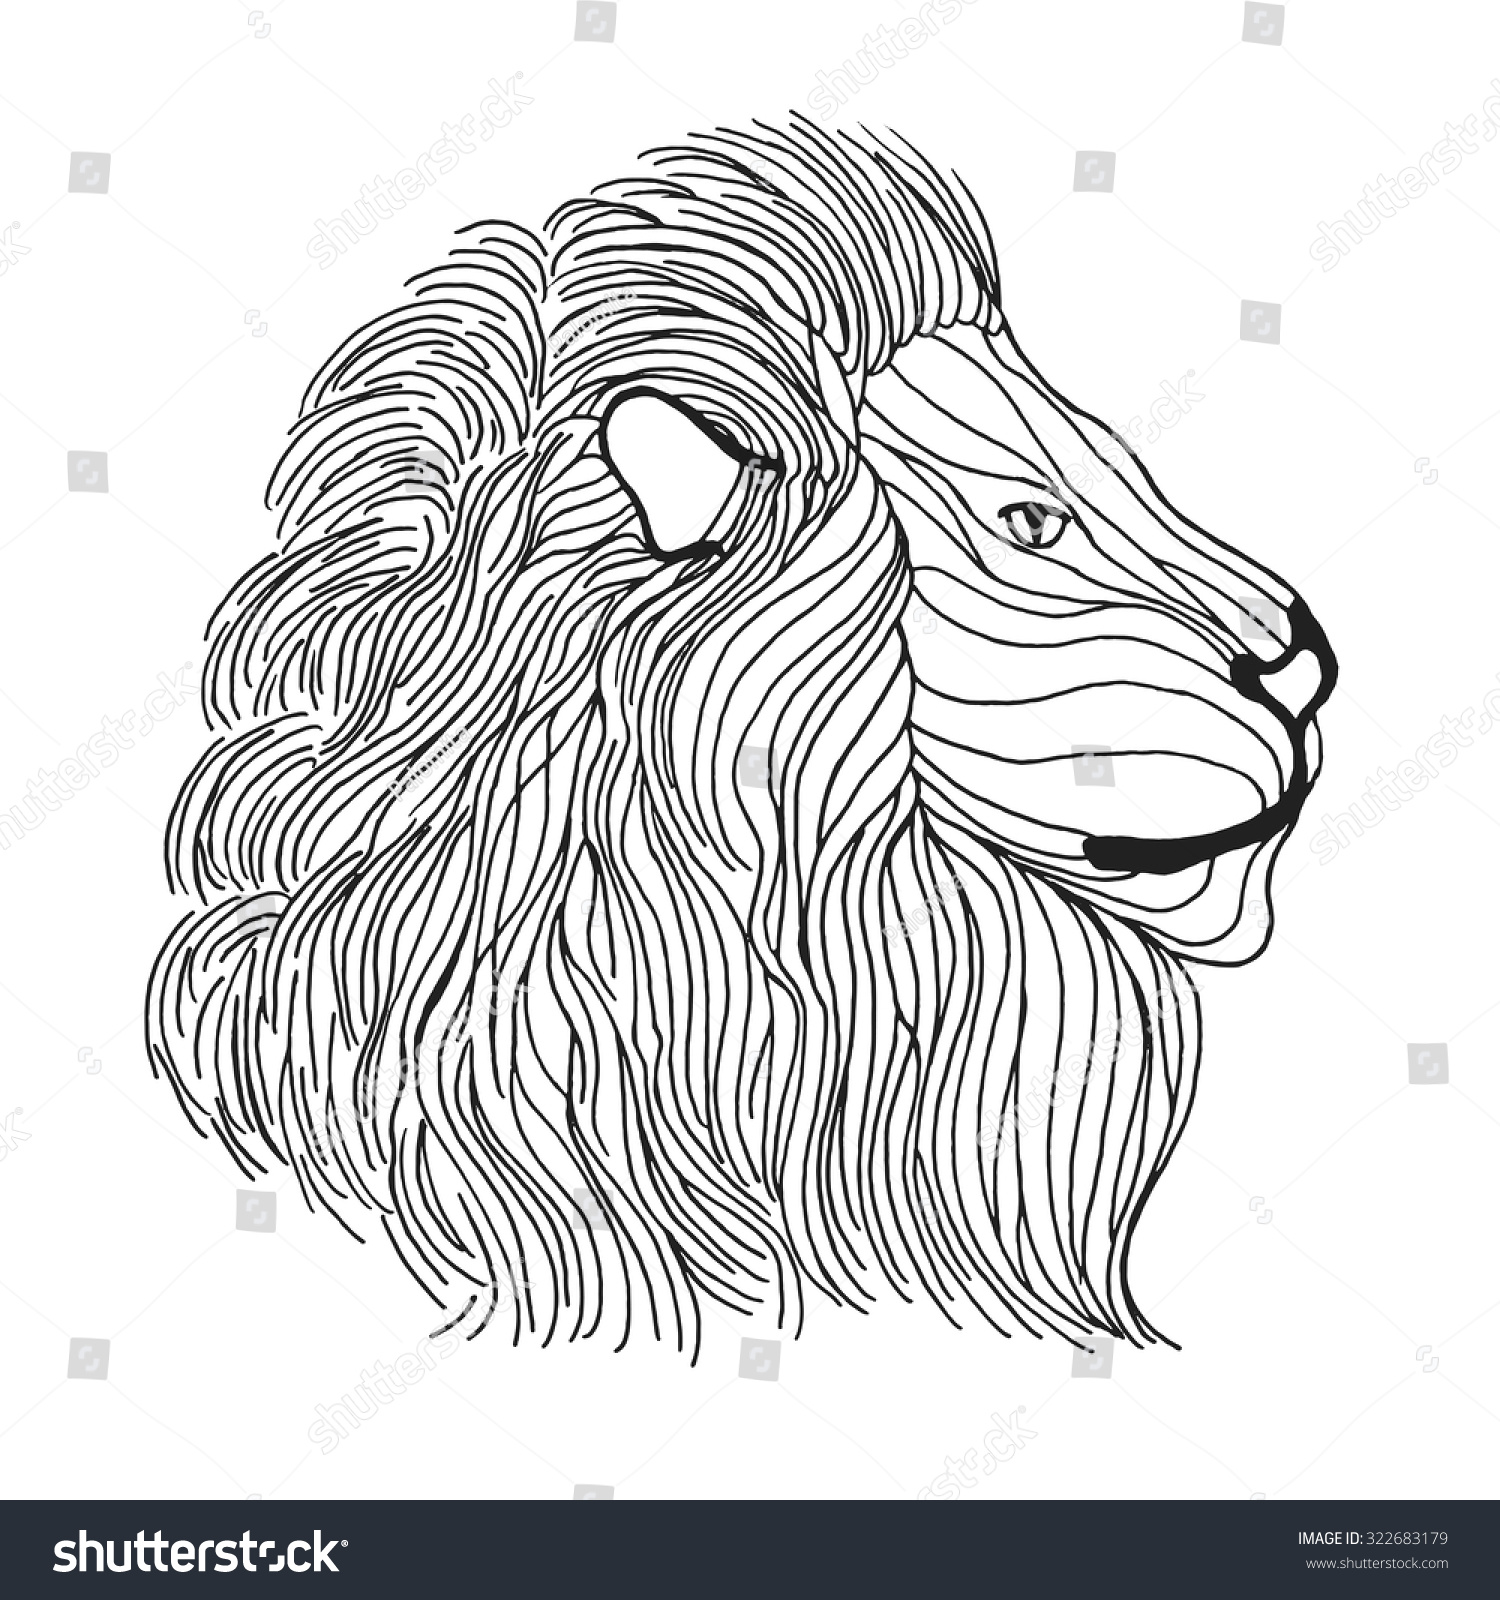 Coloring Pages Lion Head Coloring Page Mycoloring Free Printable